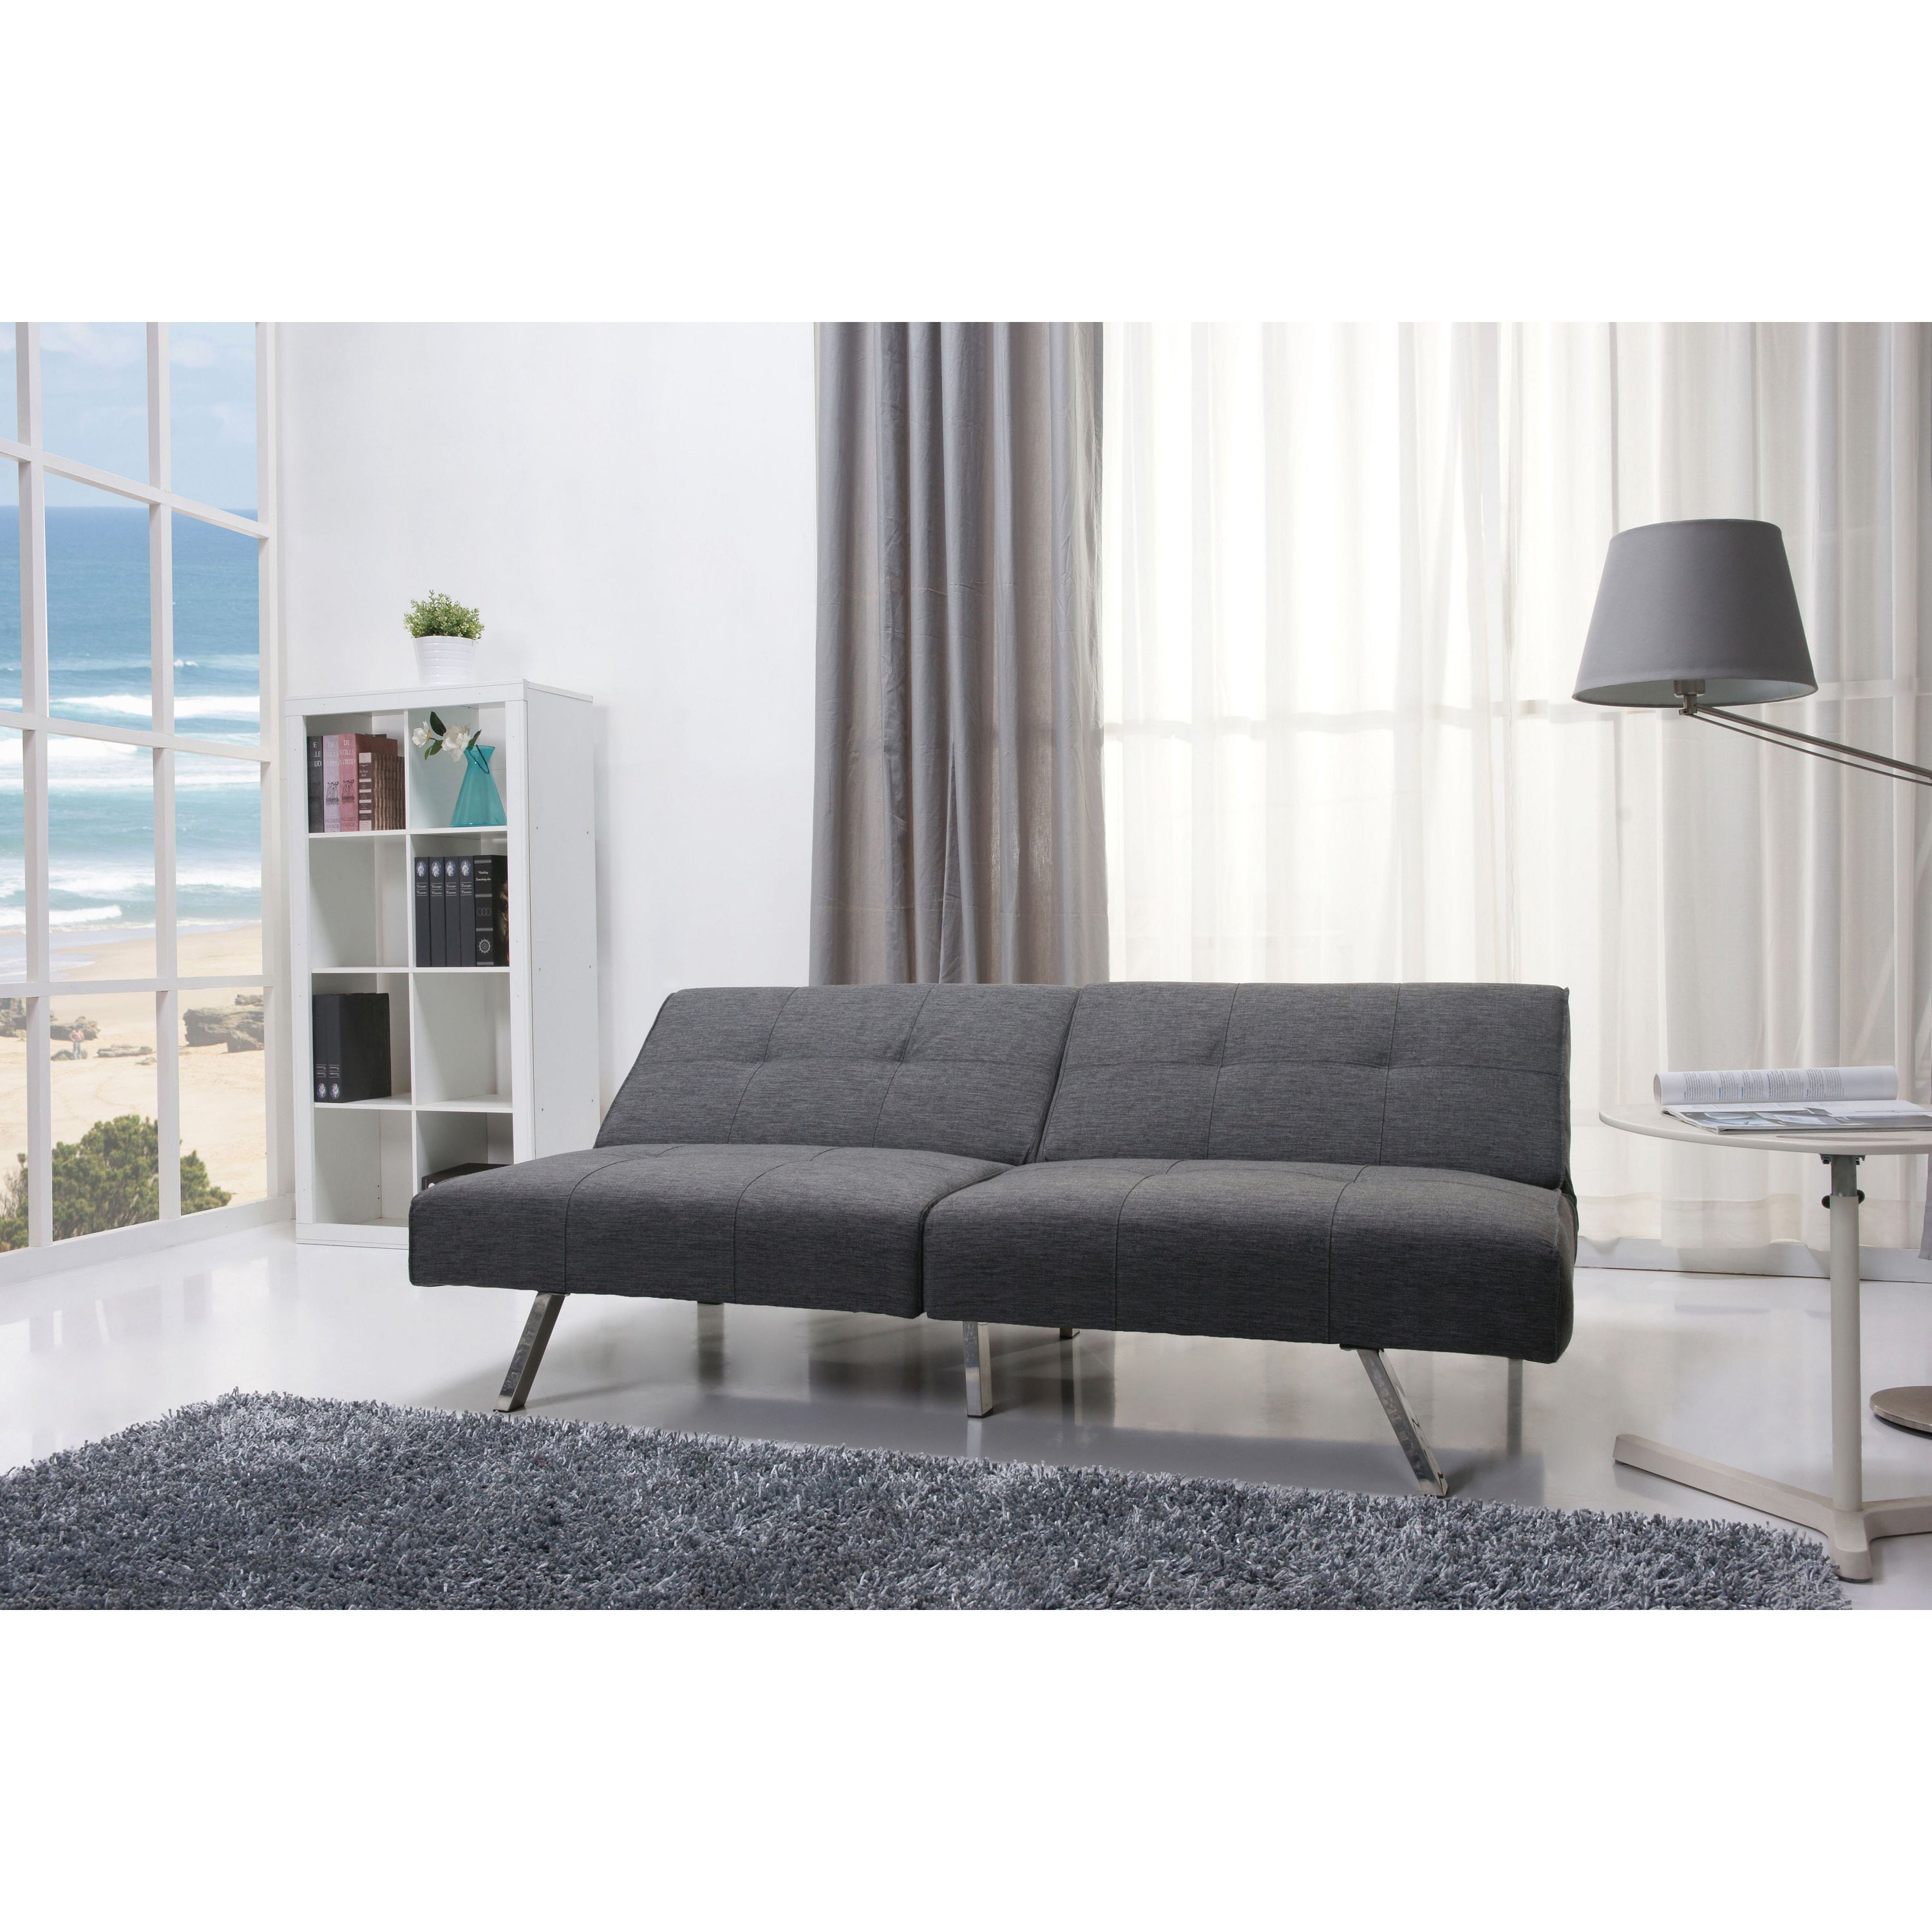 Victorville Grey Foldable Futon Sofa Bed Free Shipping Today